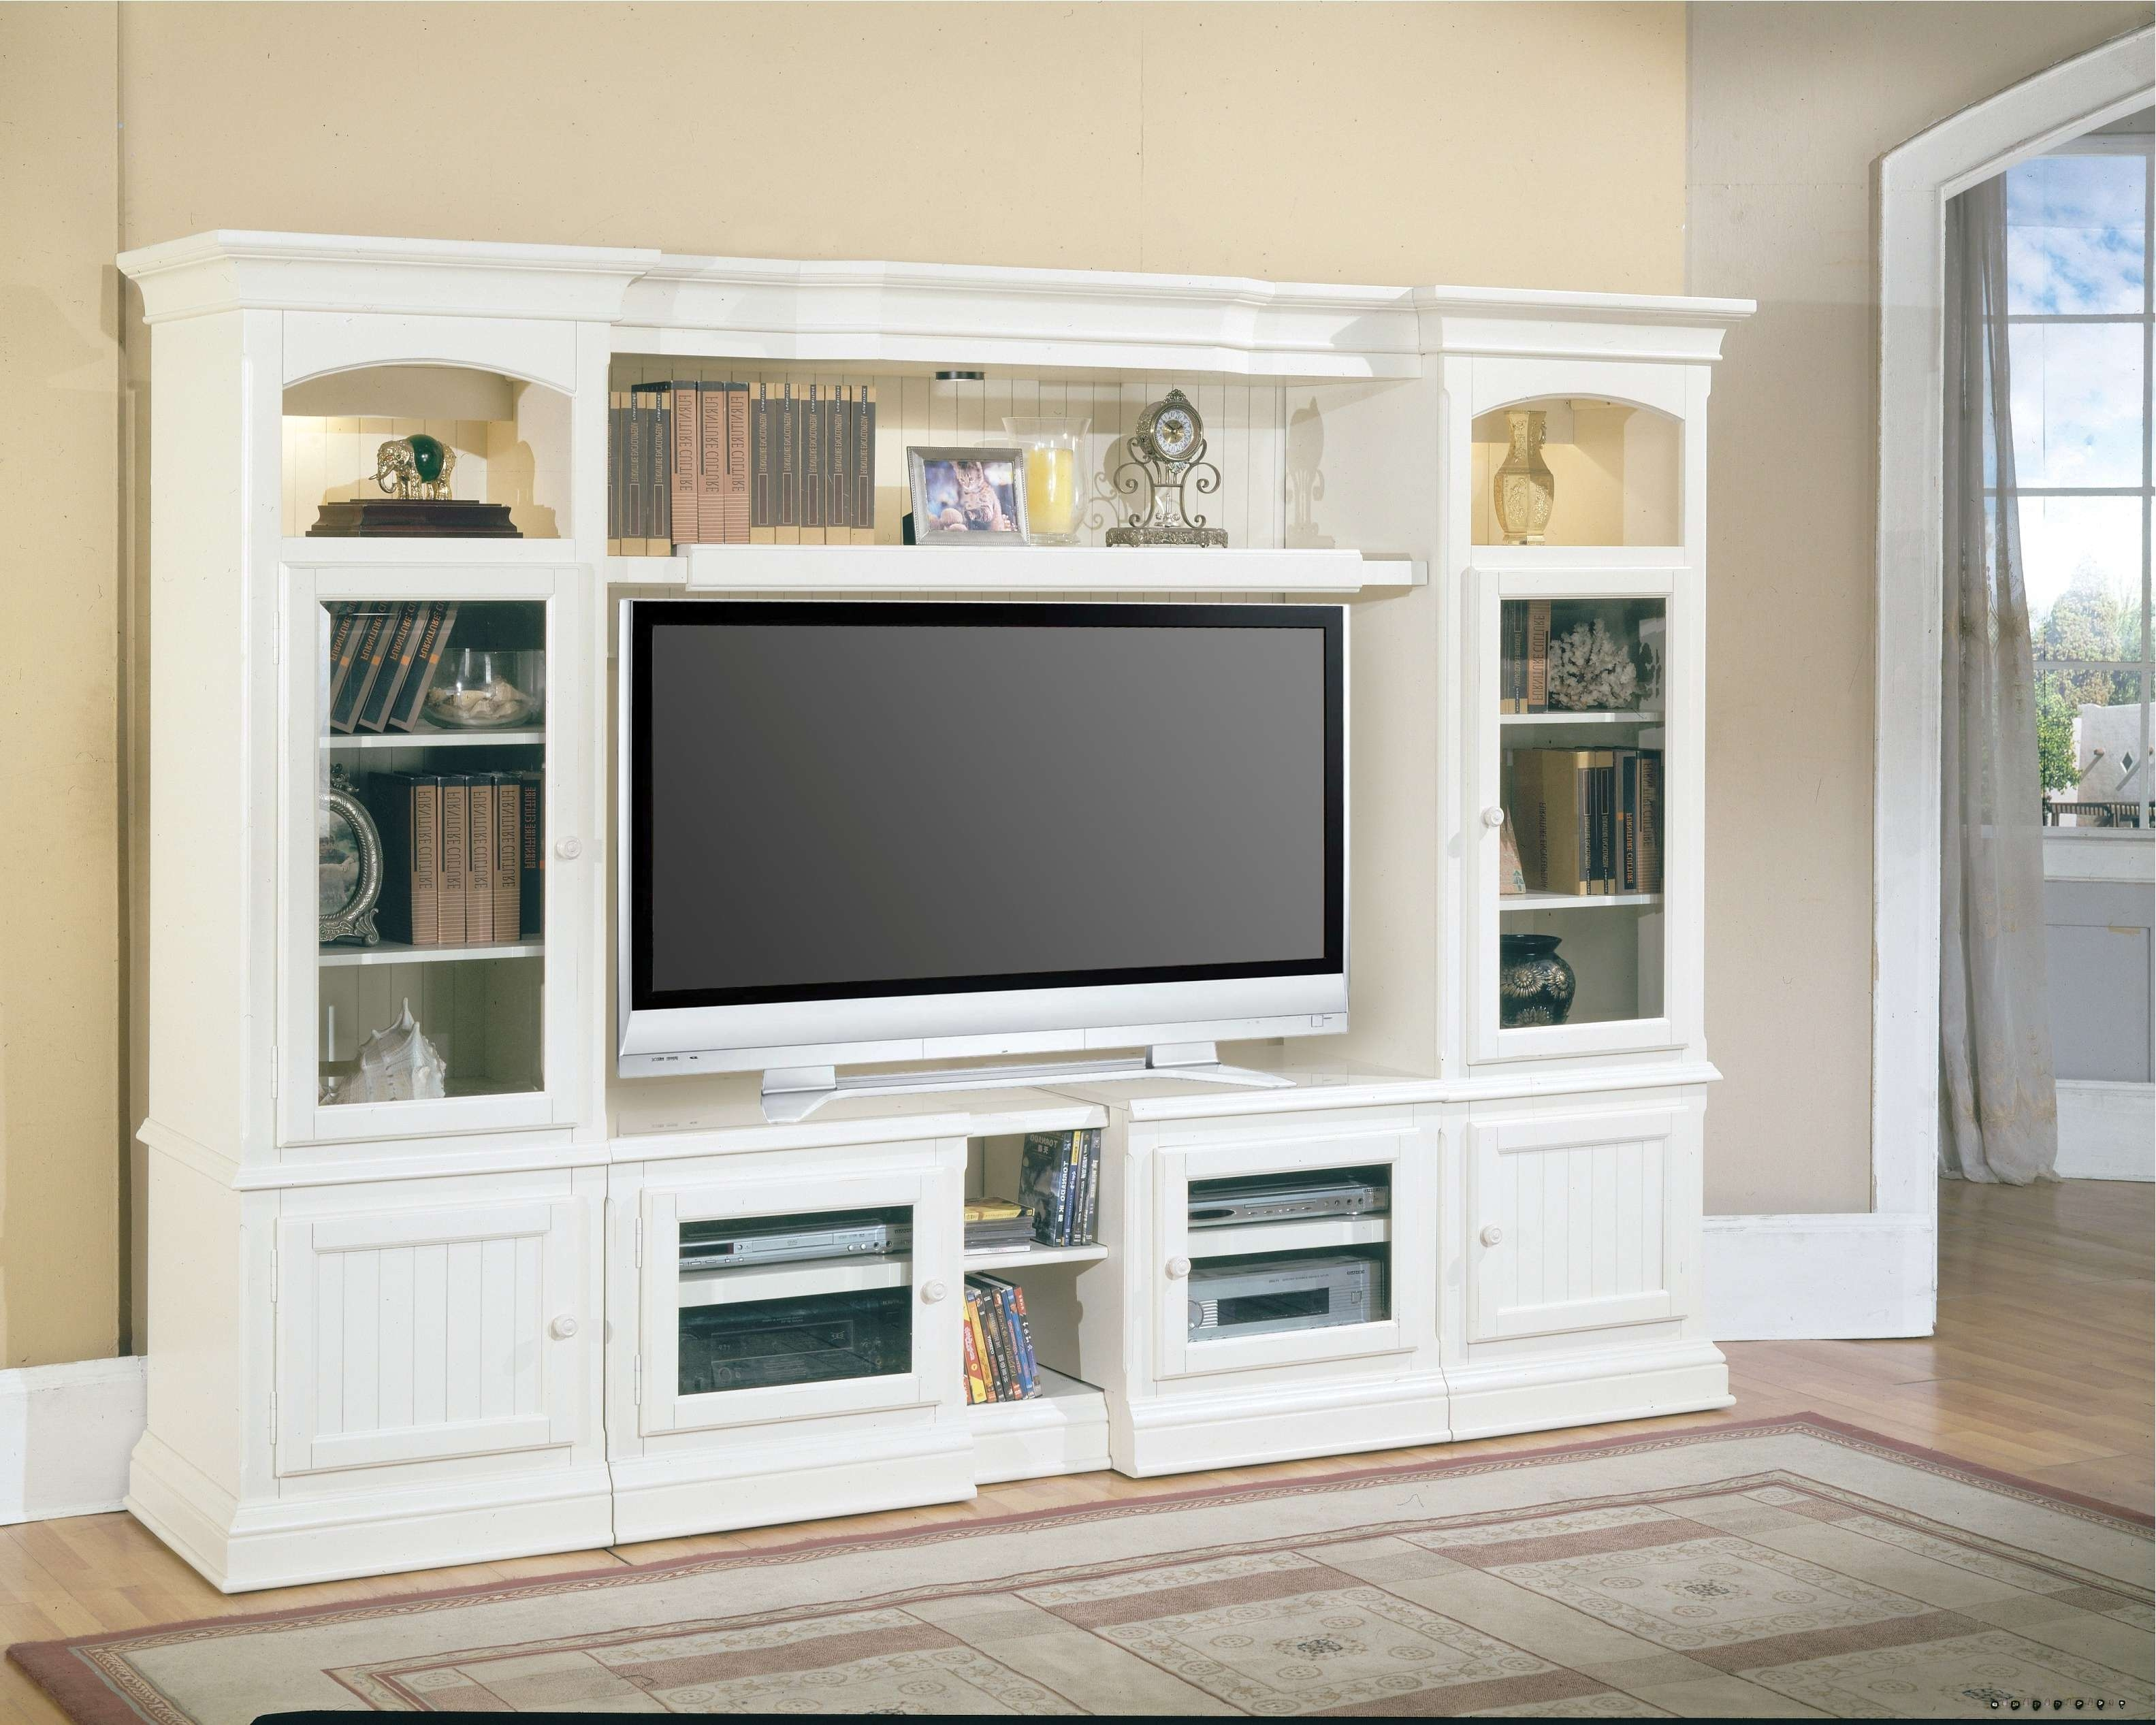 Furniture : Wall Unit Modern Furniture Catalog And Composition 333 Within Tv Cabinets And Wall Units (View 13 of 20)